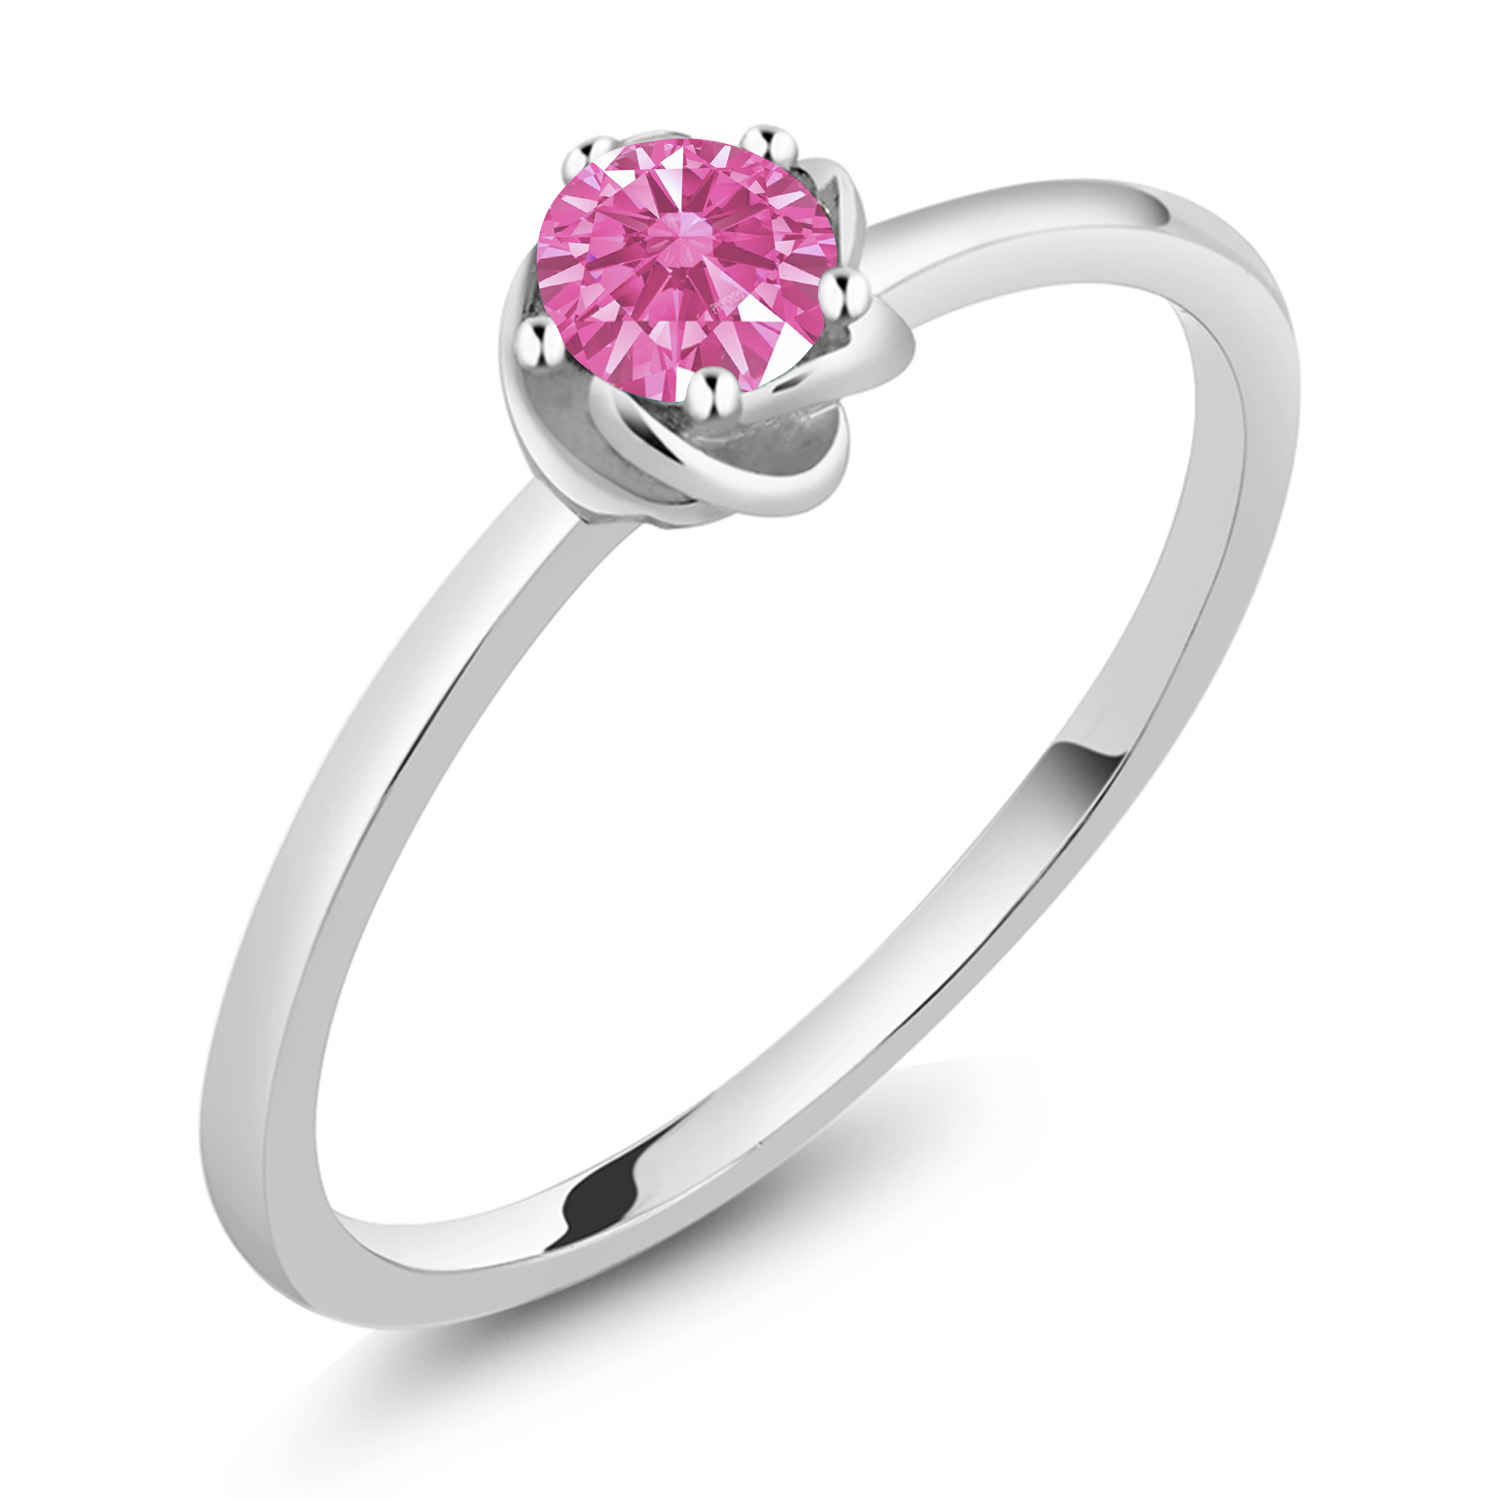 c8afc4db840c5d 10K White Gold Solitaire Ring Set with Round Pink Zirconia from Swarovski